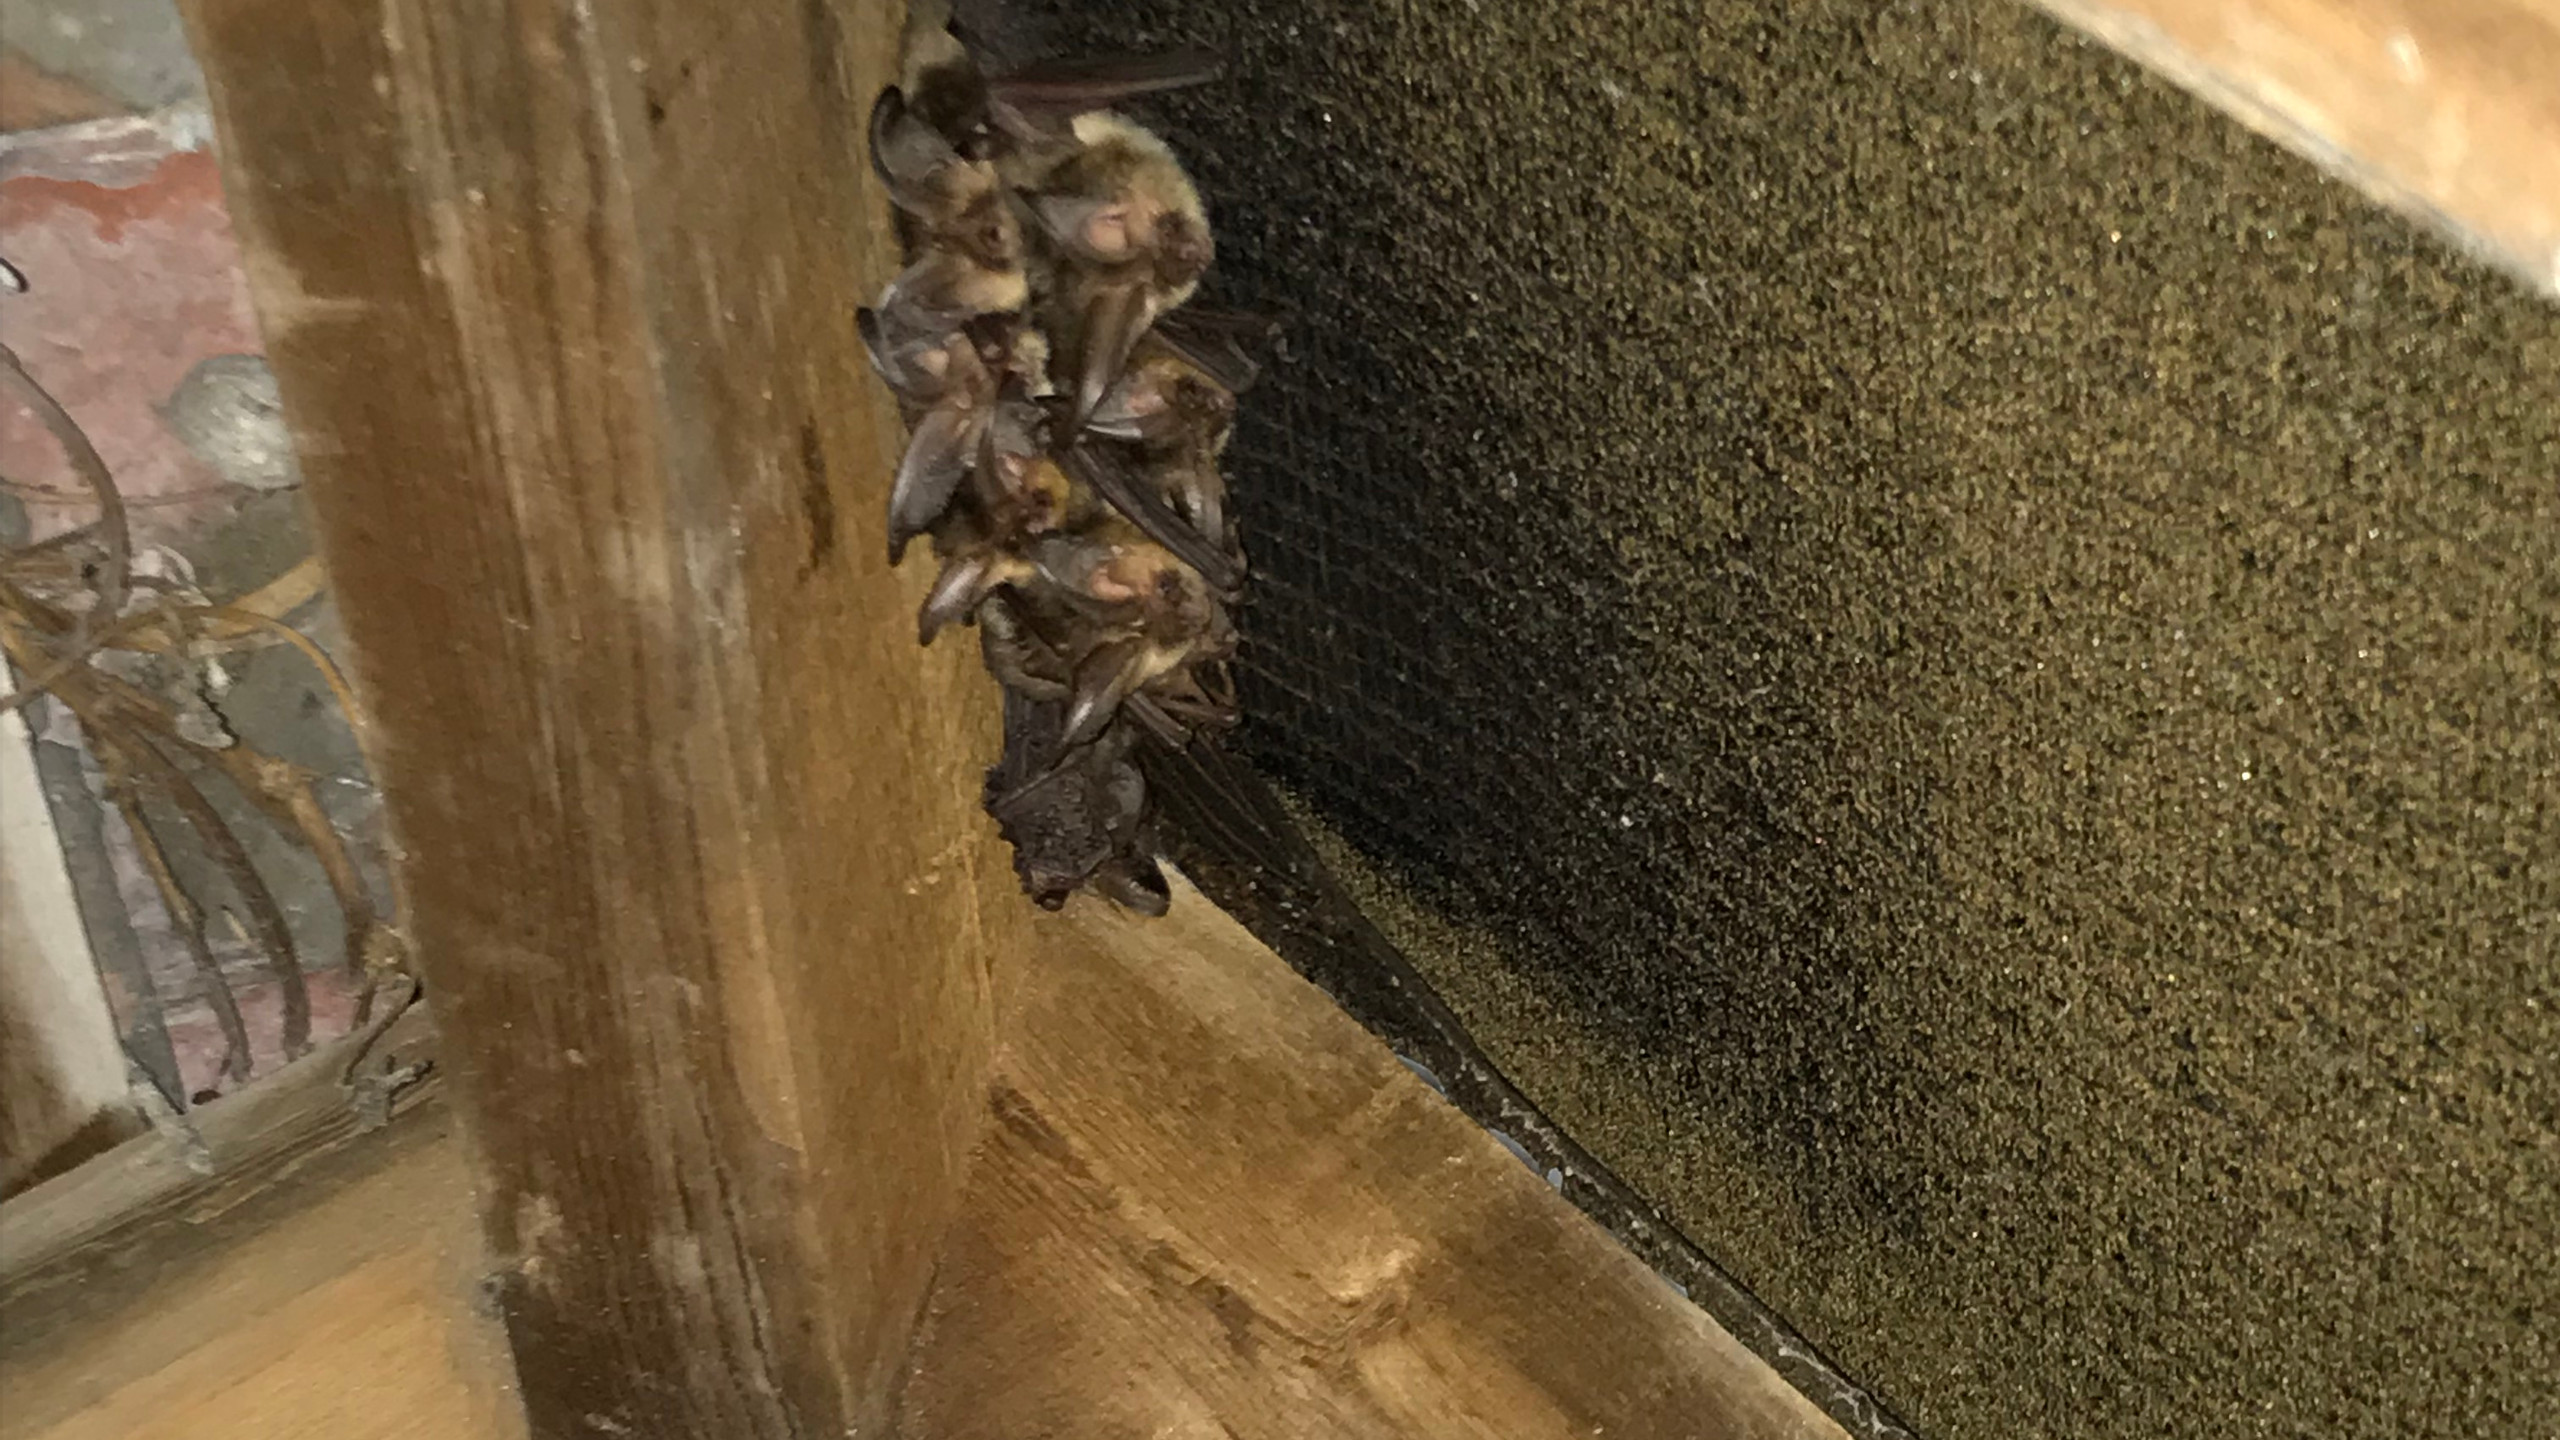 Preliminary Inspection for Bats